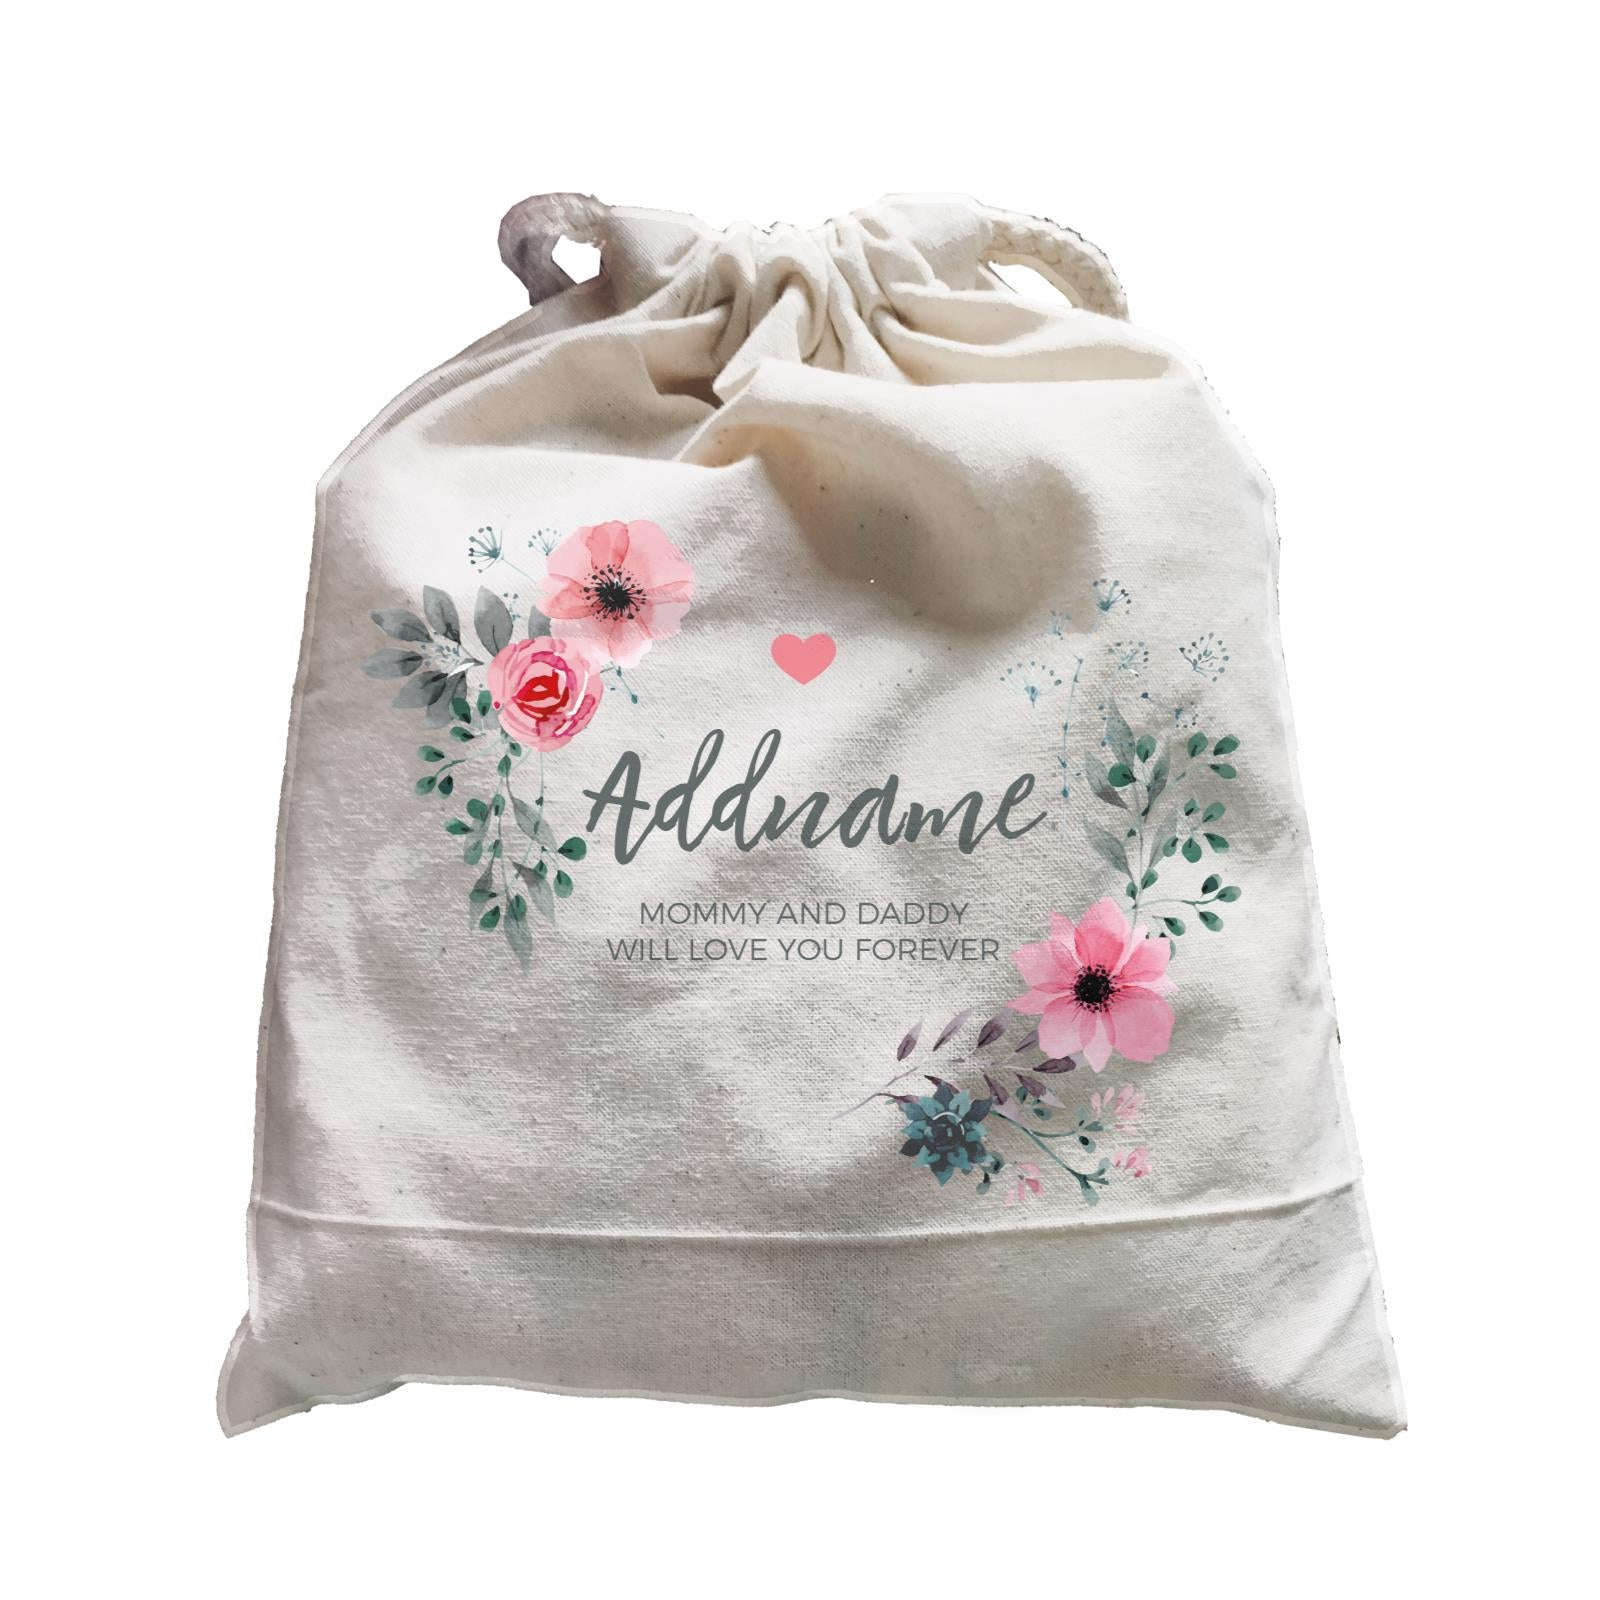 Watercolour Pink Flowers and Dark Wreath Personalizable with Name and Text Satchel